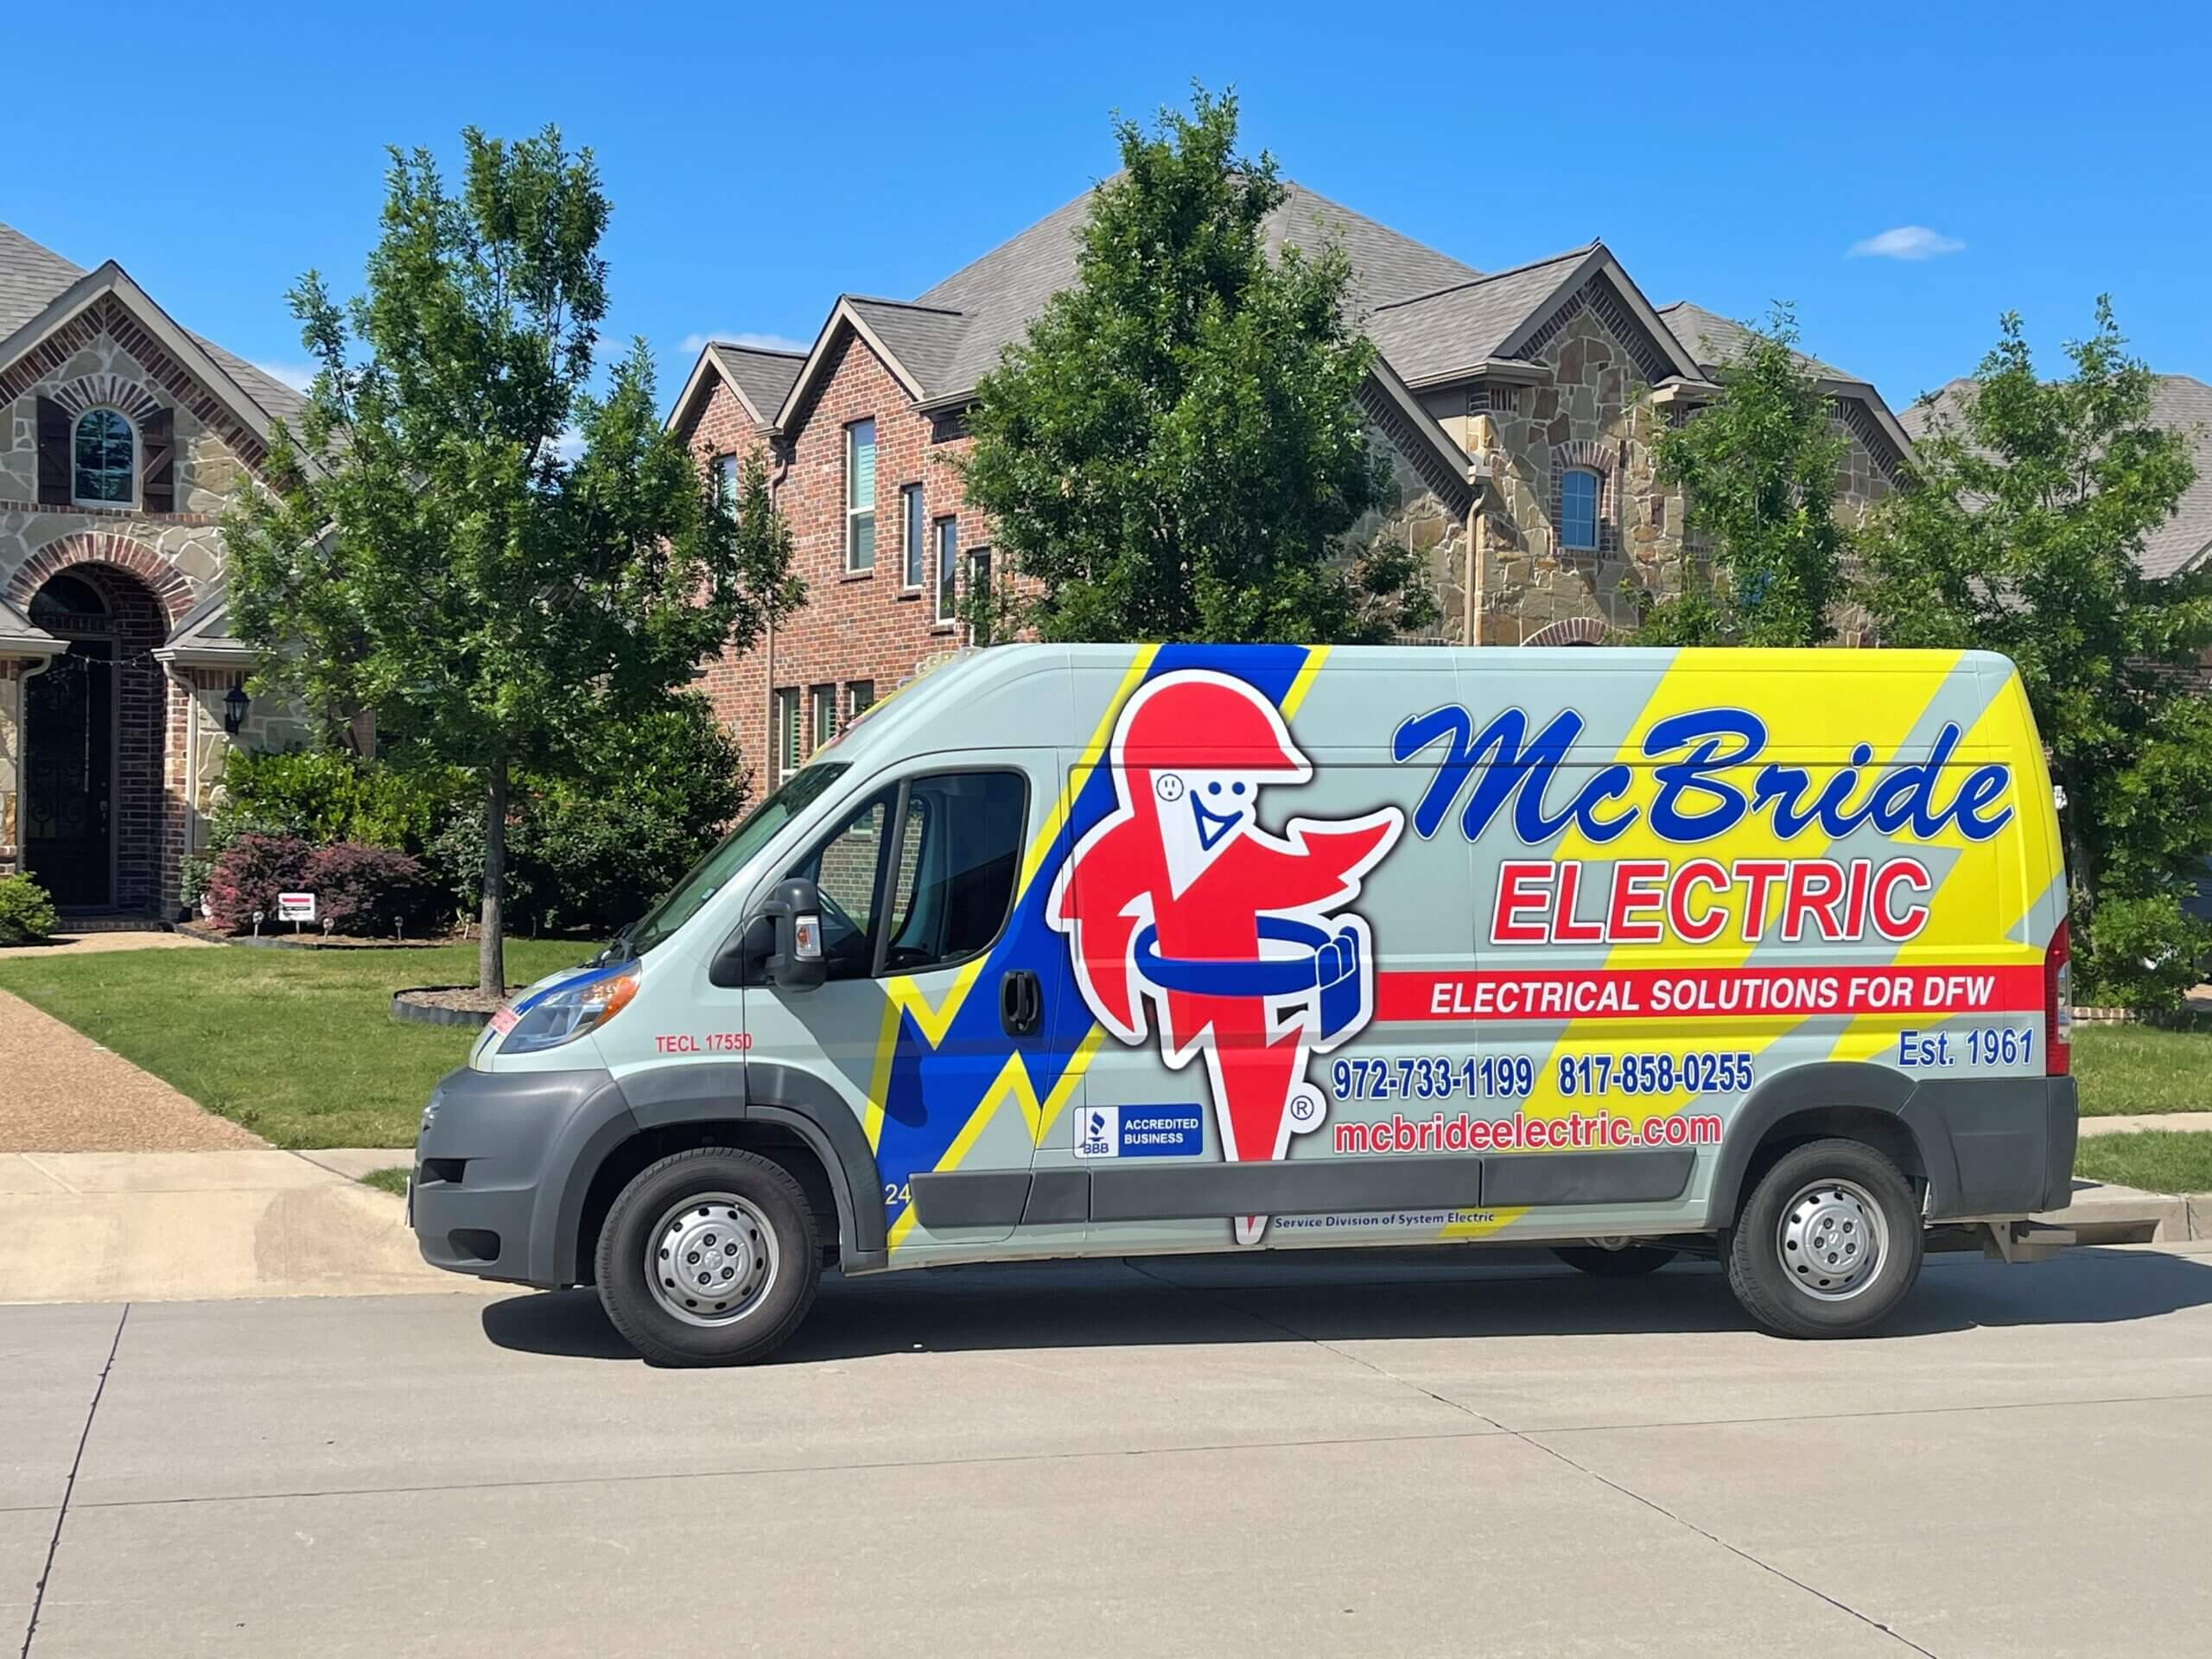 Electrical Outlet and Panel Replacement, Installation and Upgrade Services by McBride Electric Serving North Texas Area including Dallas TX, Plano TX, and Fort Worth TX